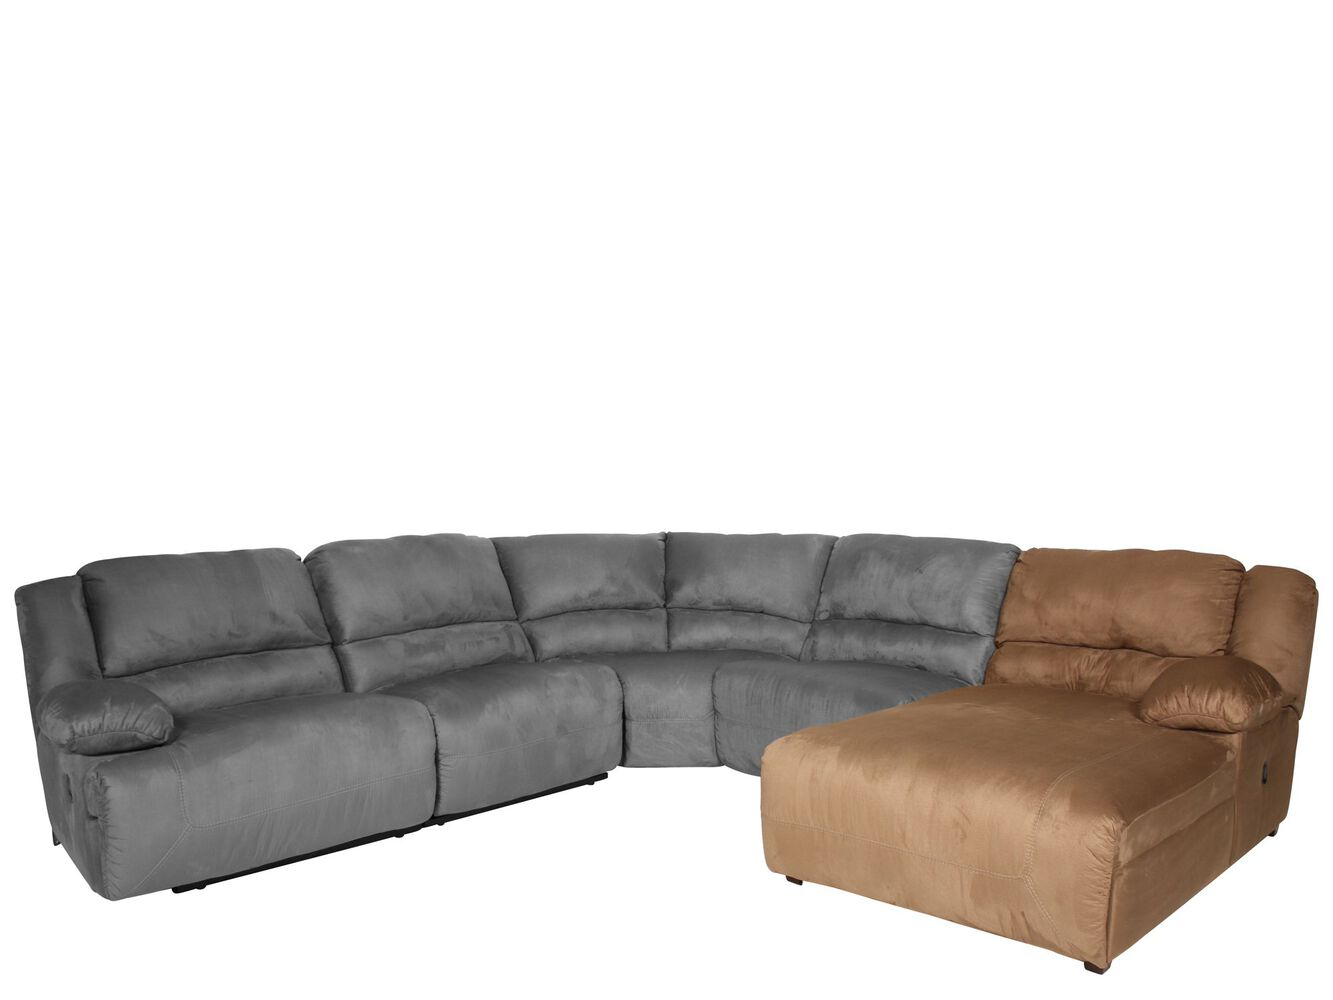 Ashley hogan right arm facing chaise mathis brothers for Ashley mocha sectional with chaise